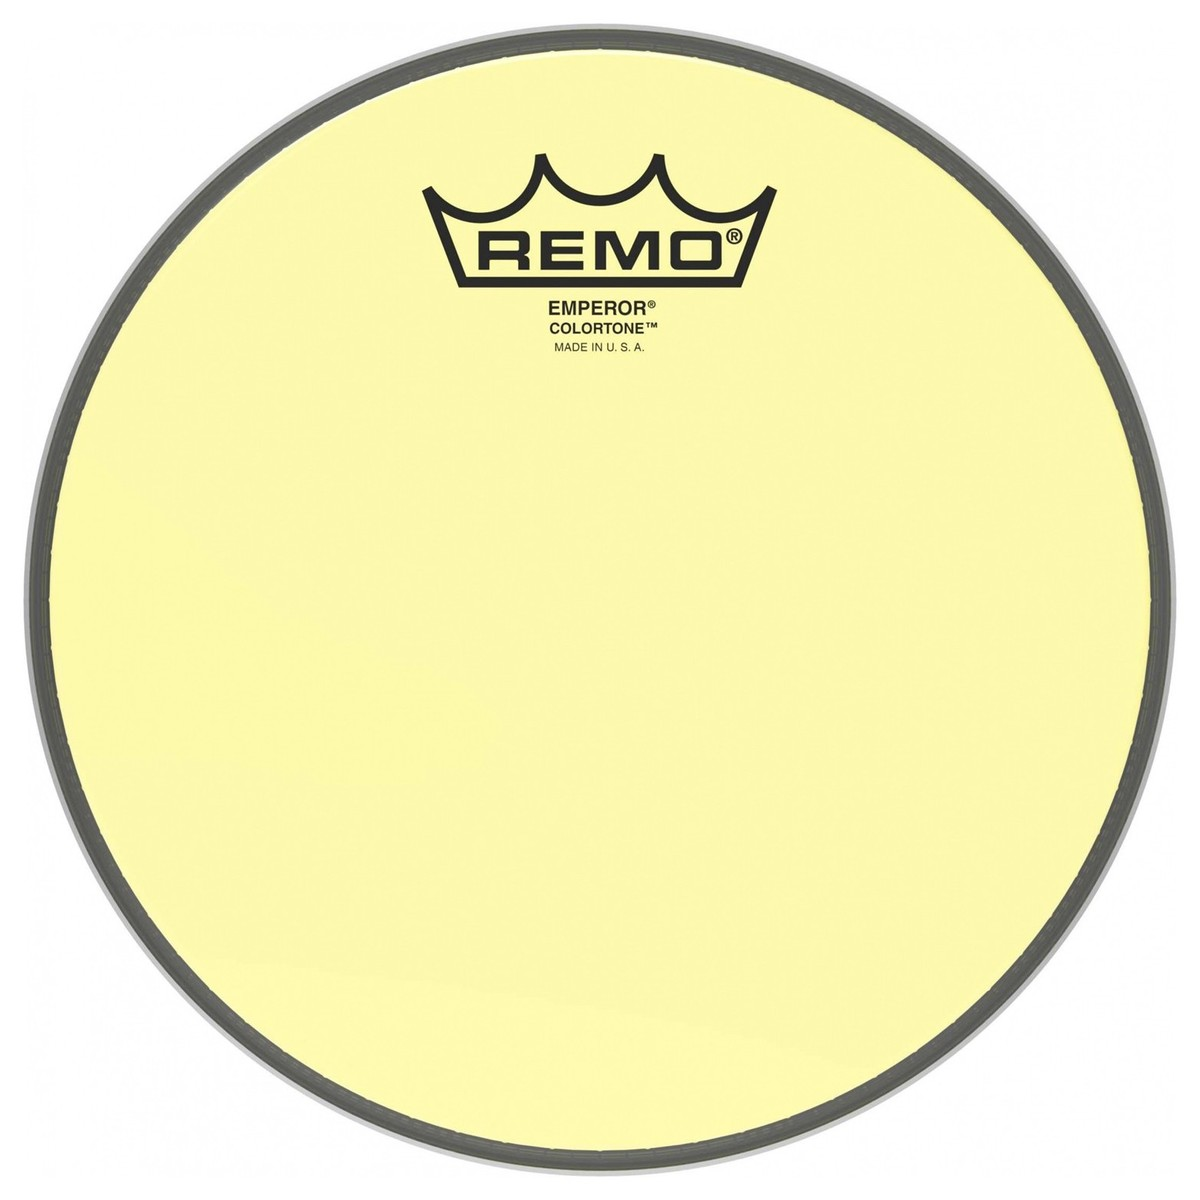 remo emperor colortone 16 39 39 yellow drum head at gear4music. Black Bedroom Furniture Sets. Home Design Ideas